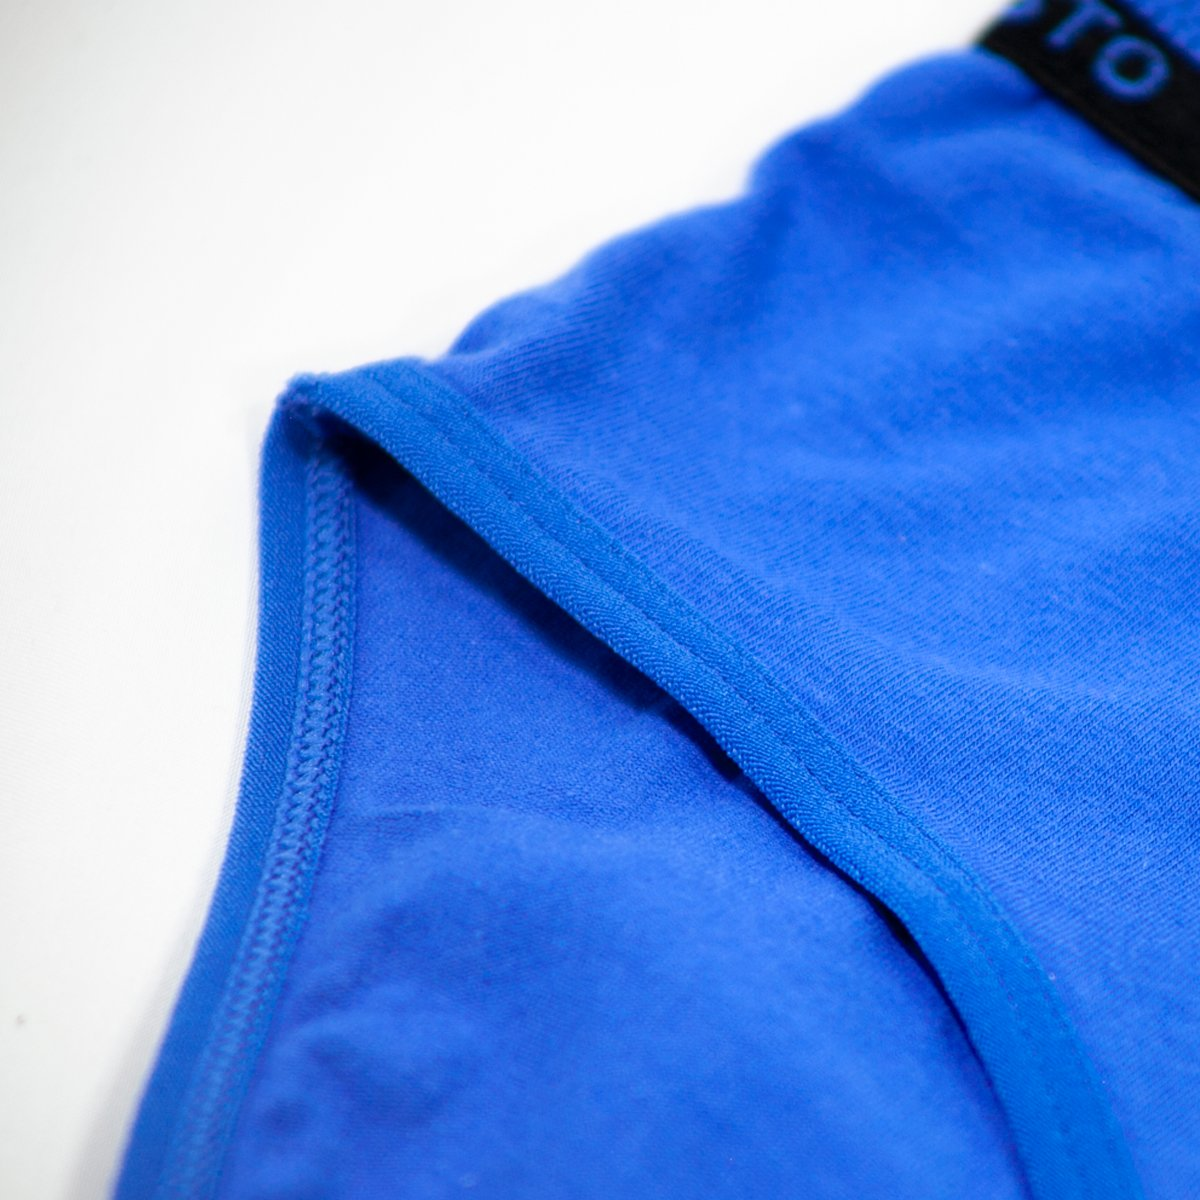 Dolce Gusto Men's Boxers Brief 3-Pack - XXXL by Love Hana (Image #9)